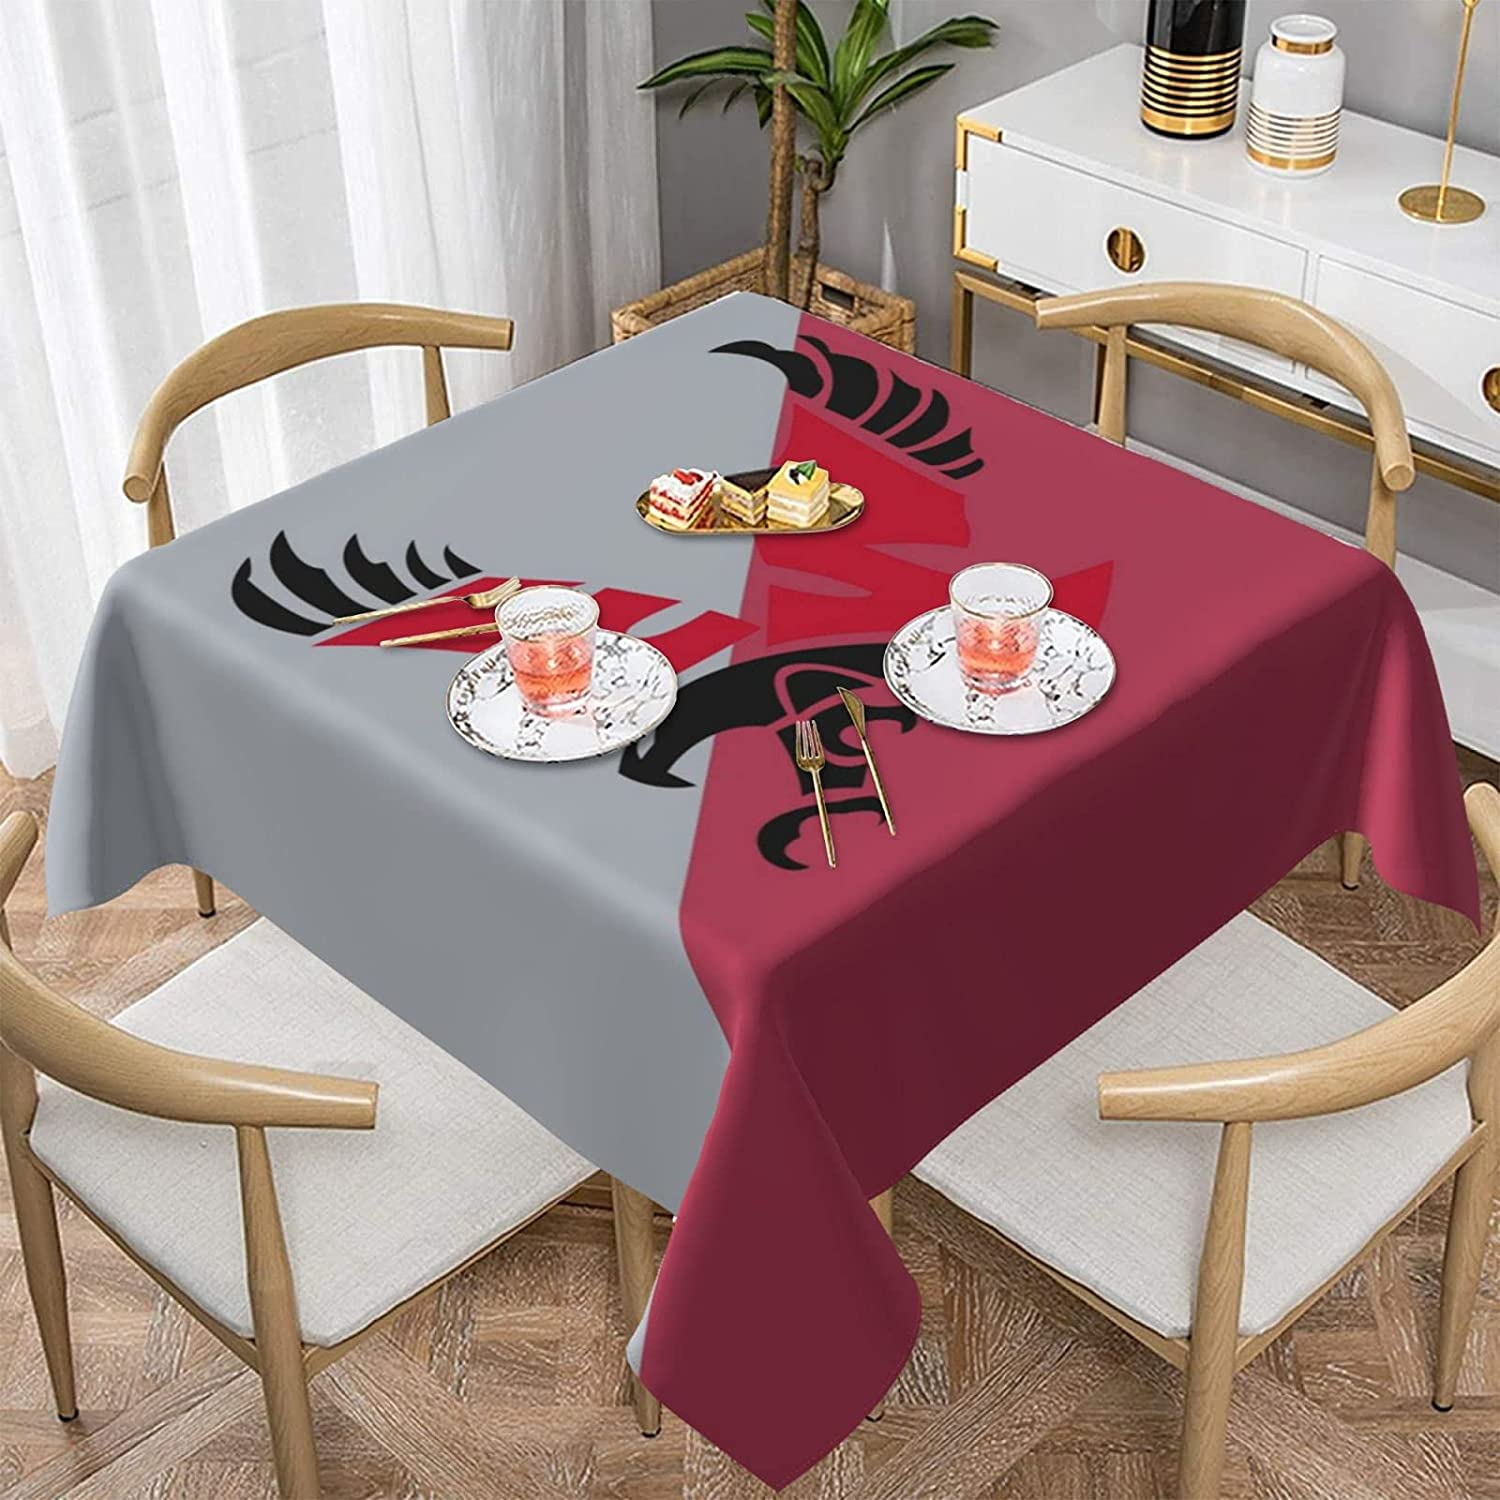 Eastern Washington University Tablecloth Foursquare Decor Desk Oilproof Waterproof Tabletop Cover Cloth Table Cover for Buffet Party Dinner Picnic Kitchen